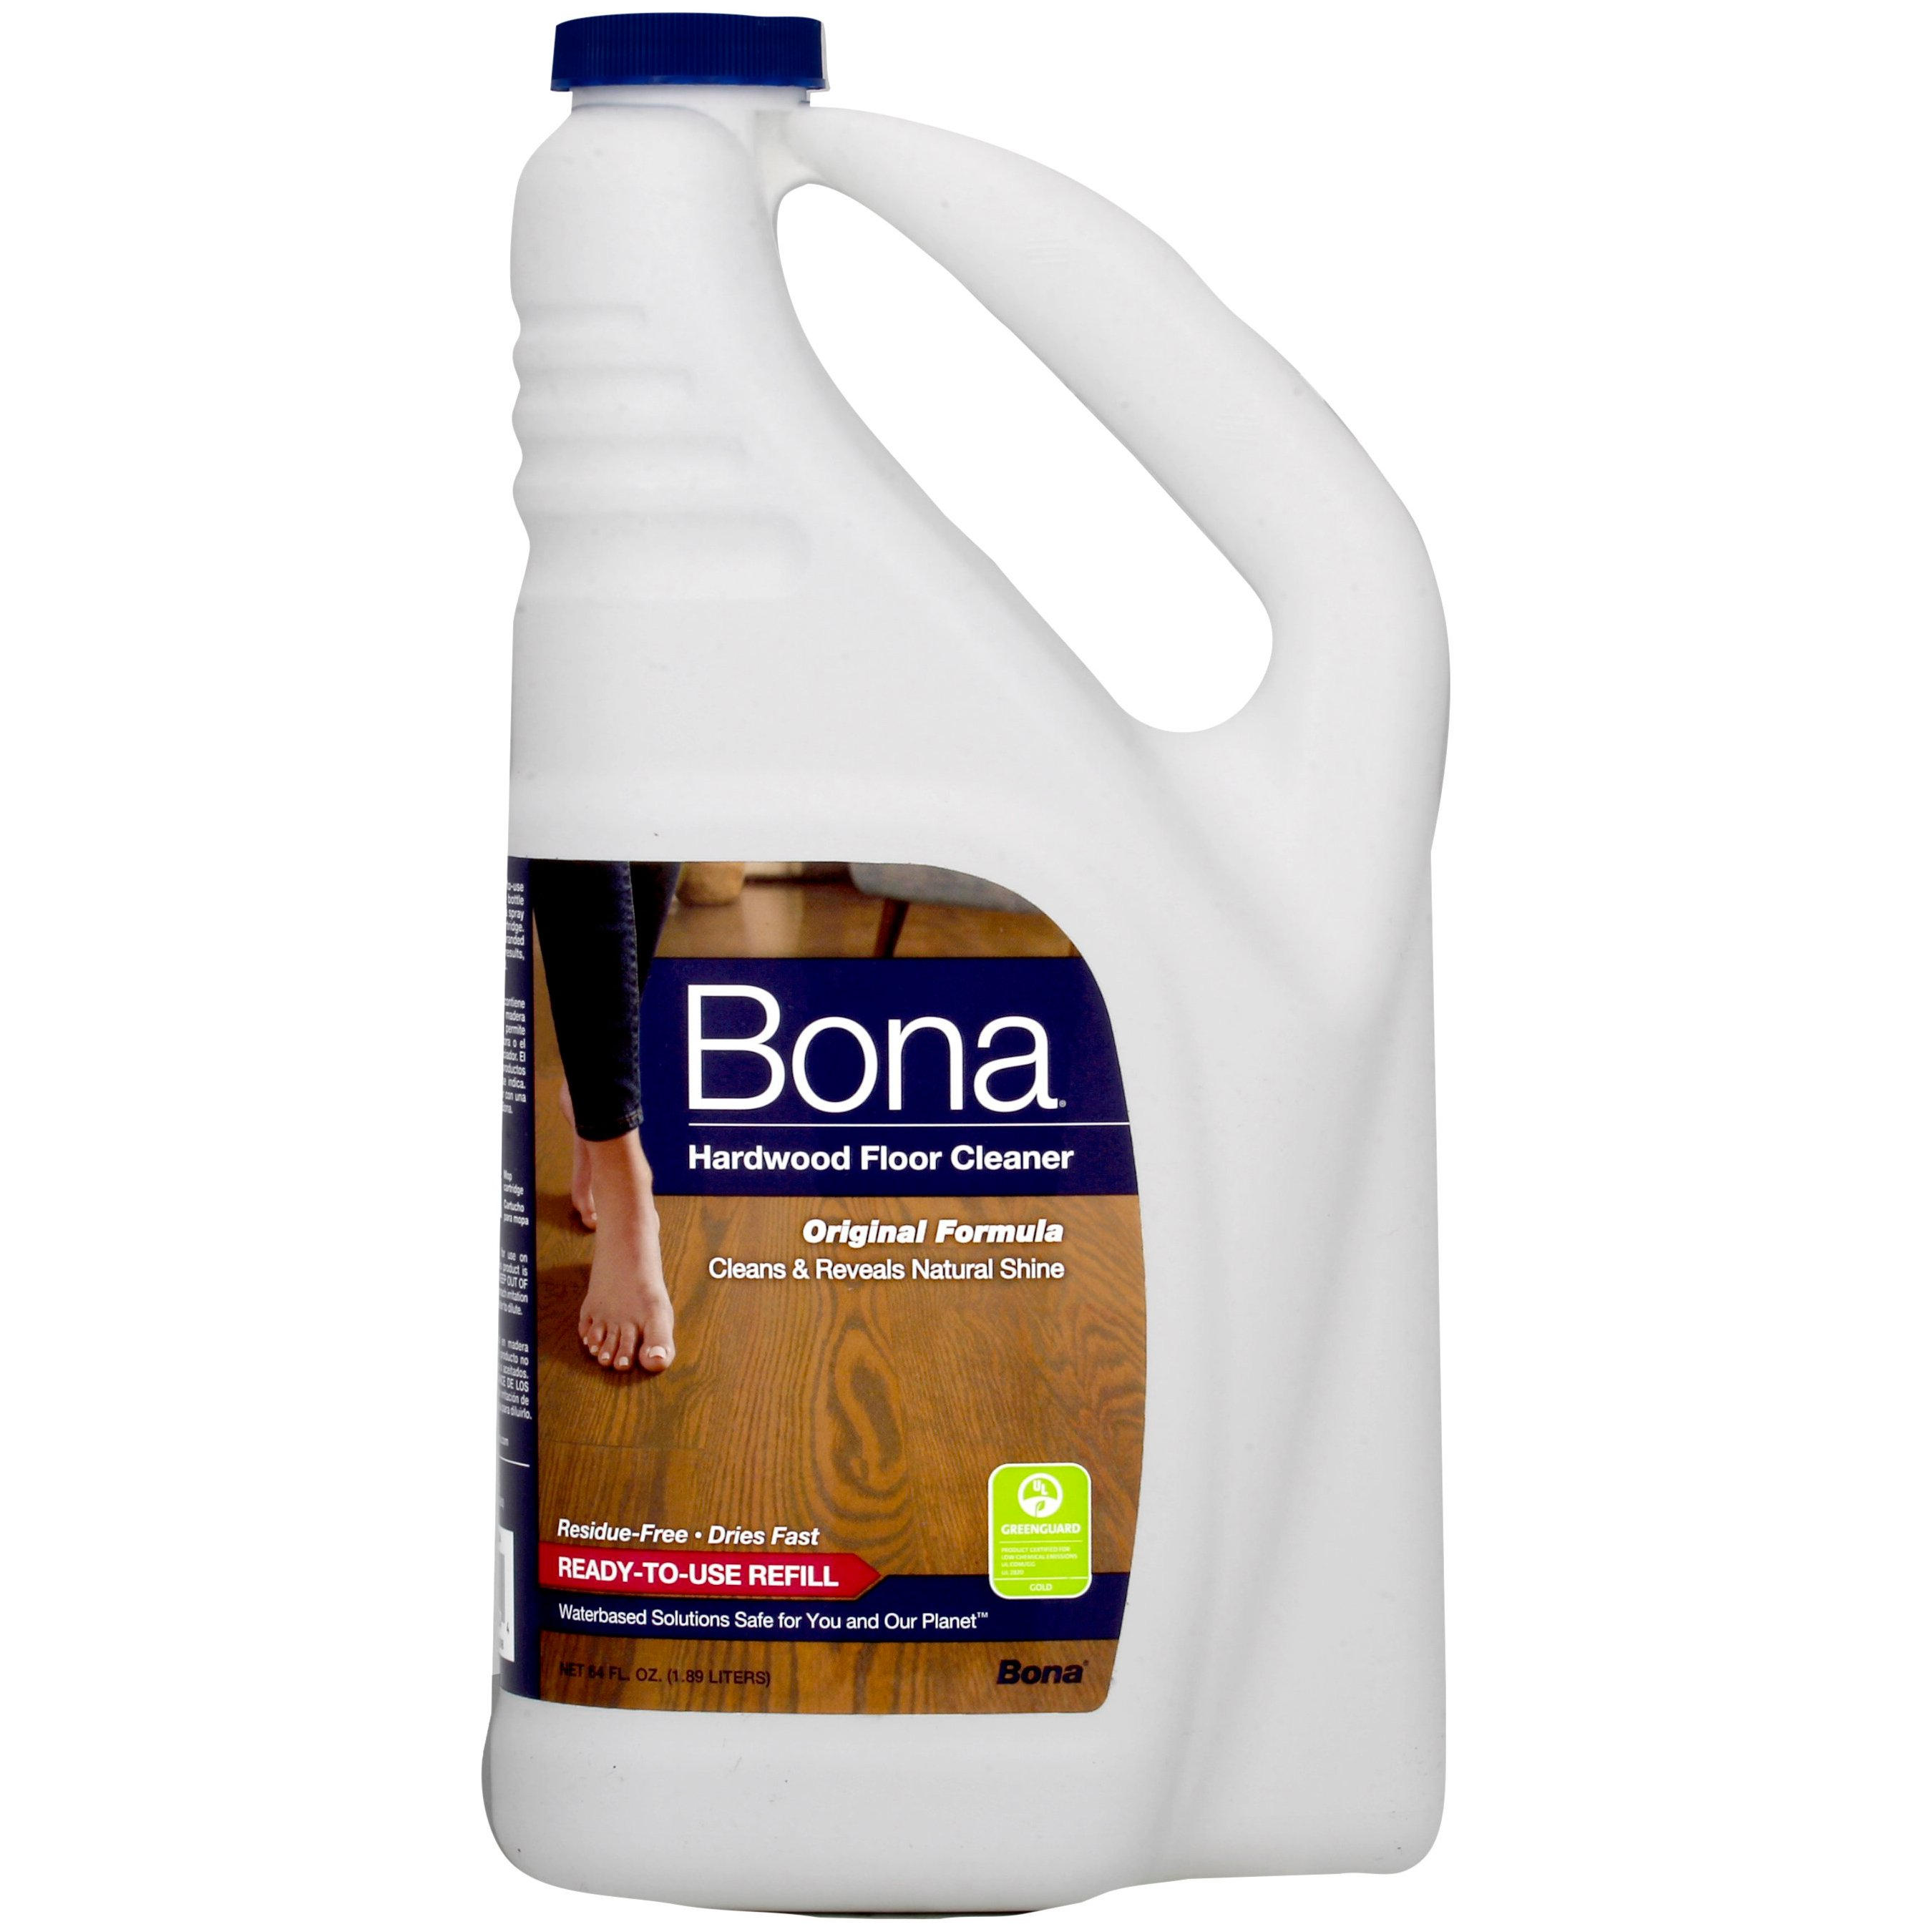 Bona floor cleaner msds meze blog for Bona floor cleaner